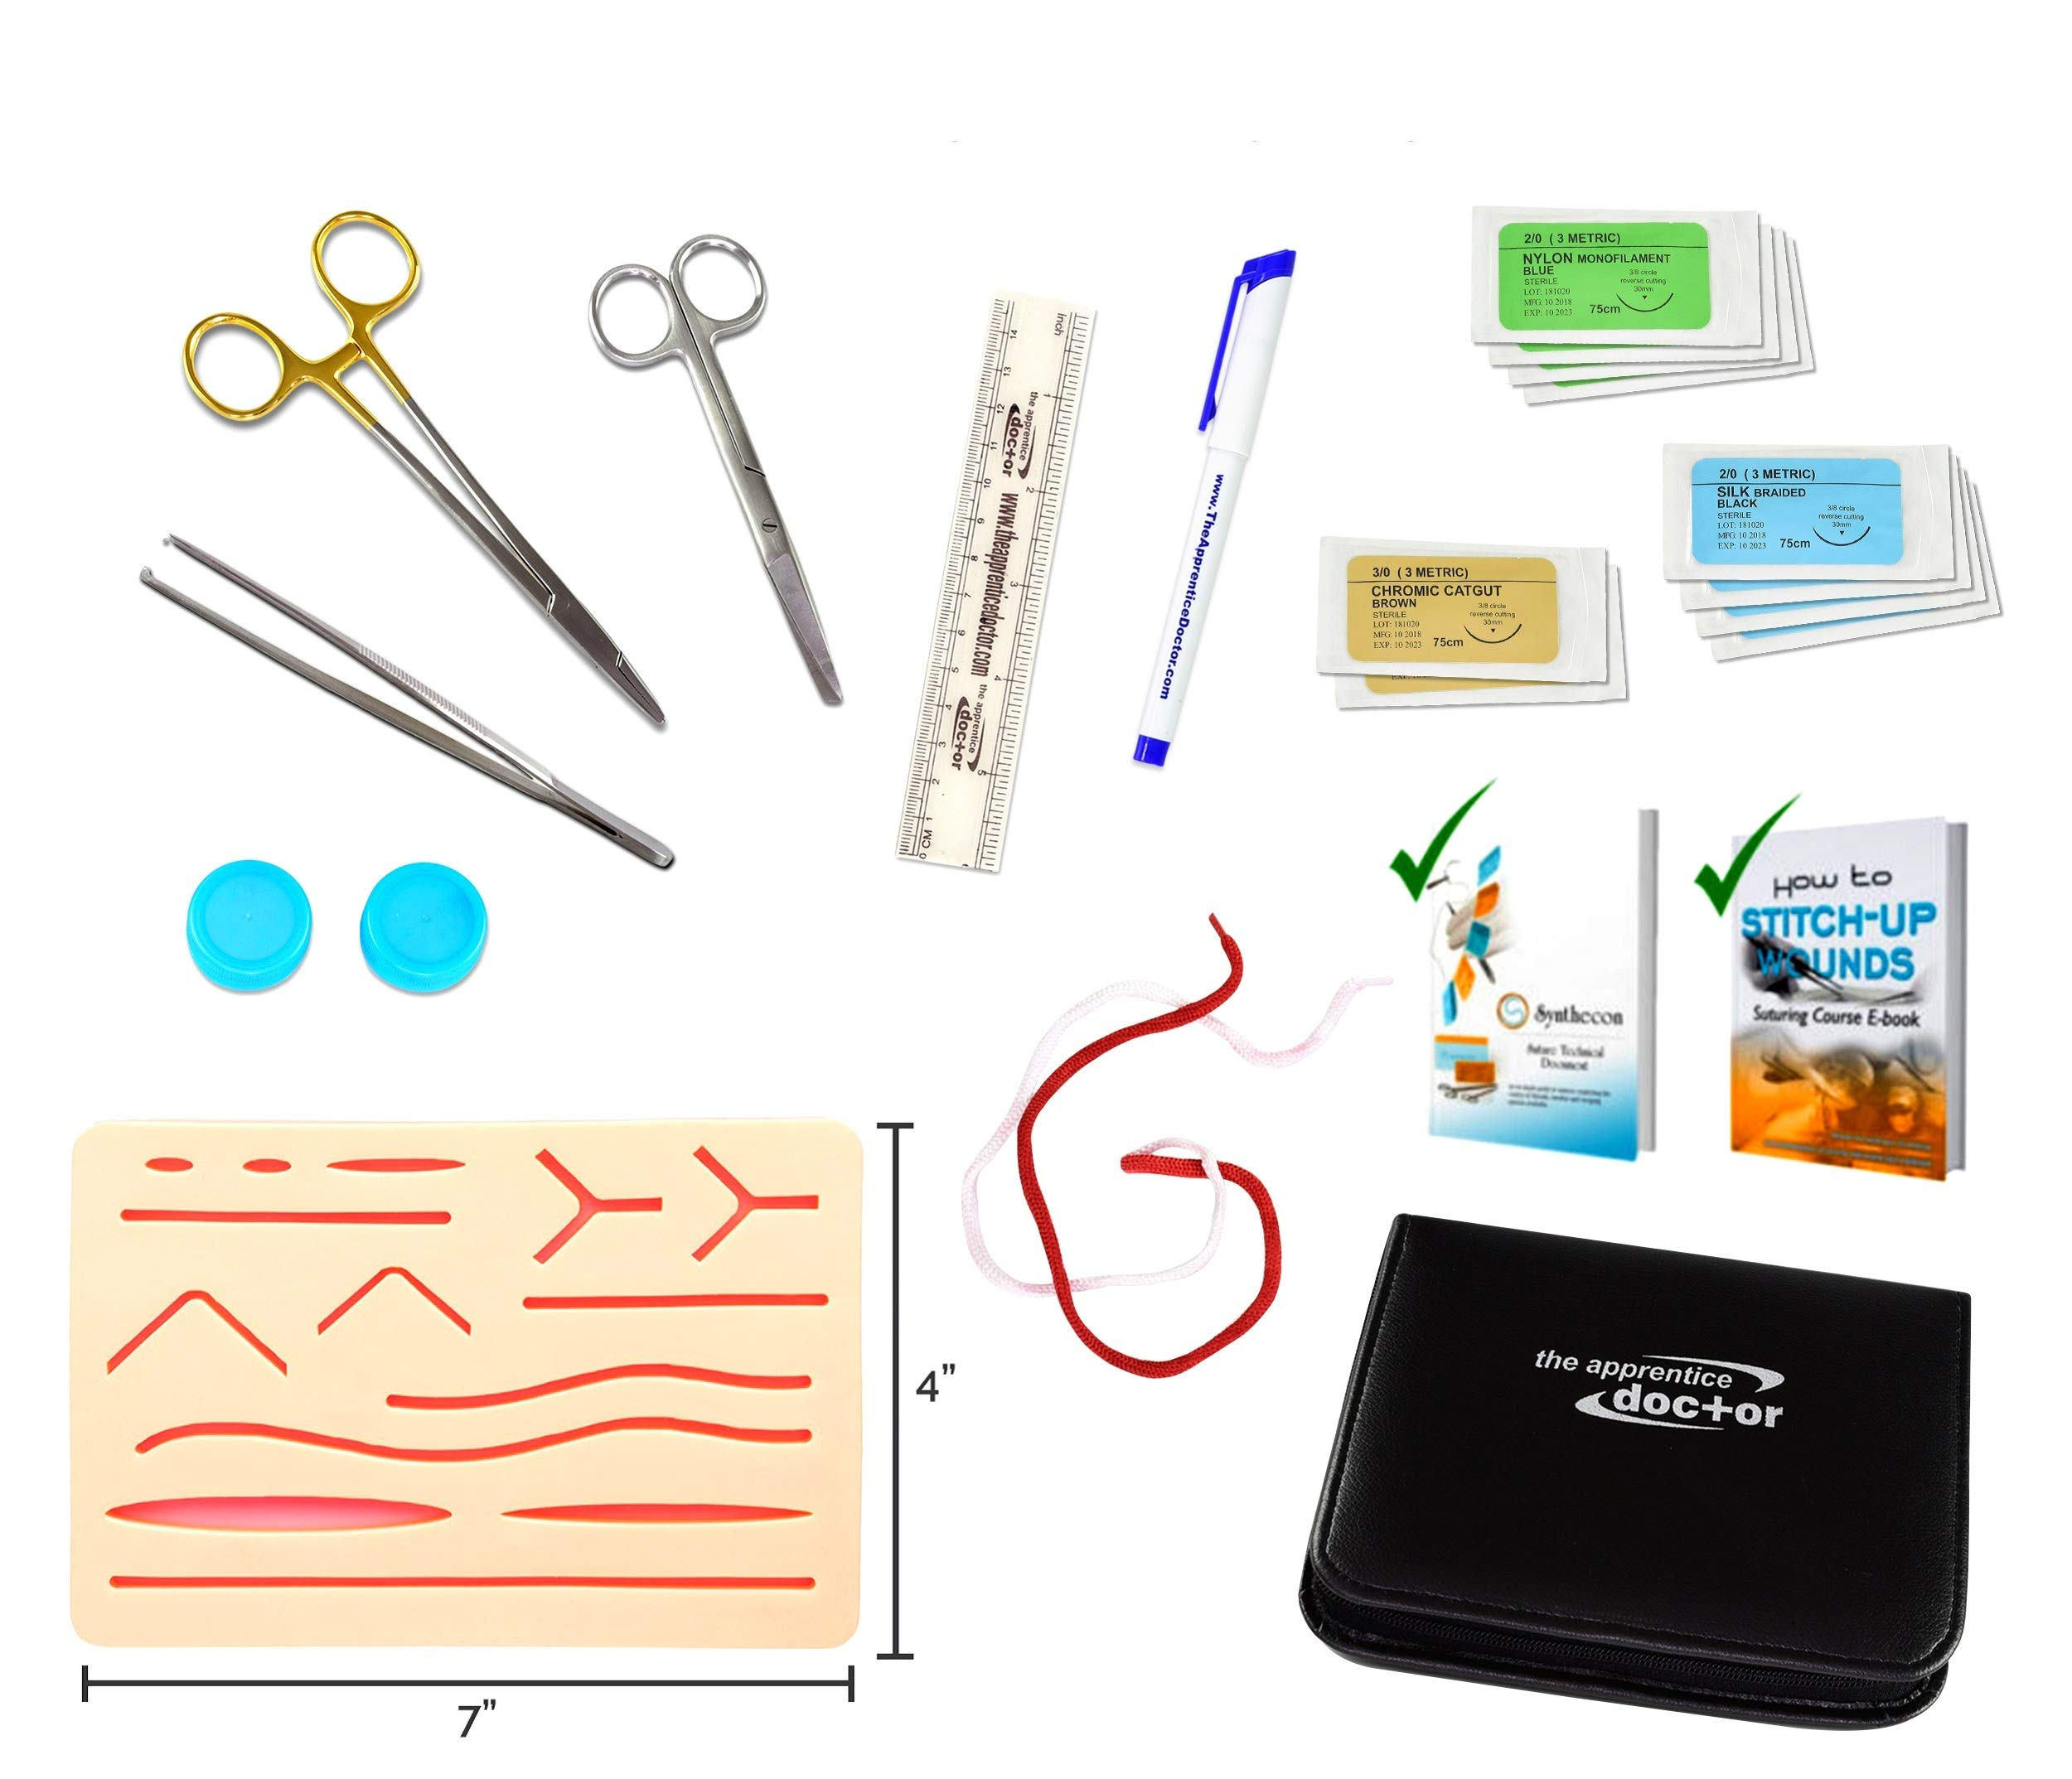 Suture Practice Kit by The Apprentice Doctor | includes Suturing Video Series from an Experienced Surgeon, Two eBook Training Guides, & Silicone Suturing Skin Pad - for Training Medical Professionals.